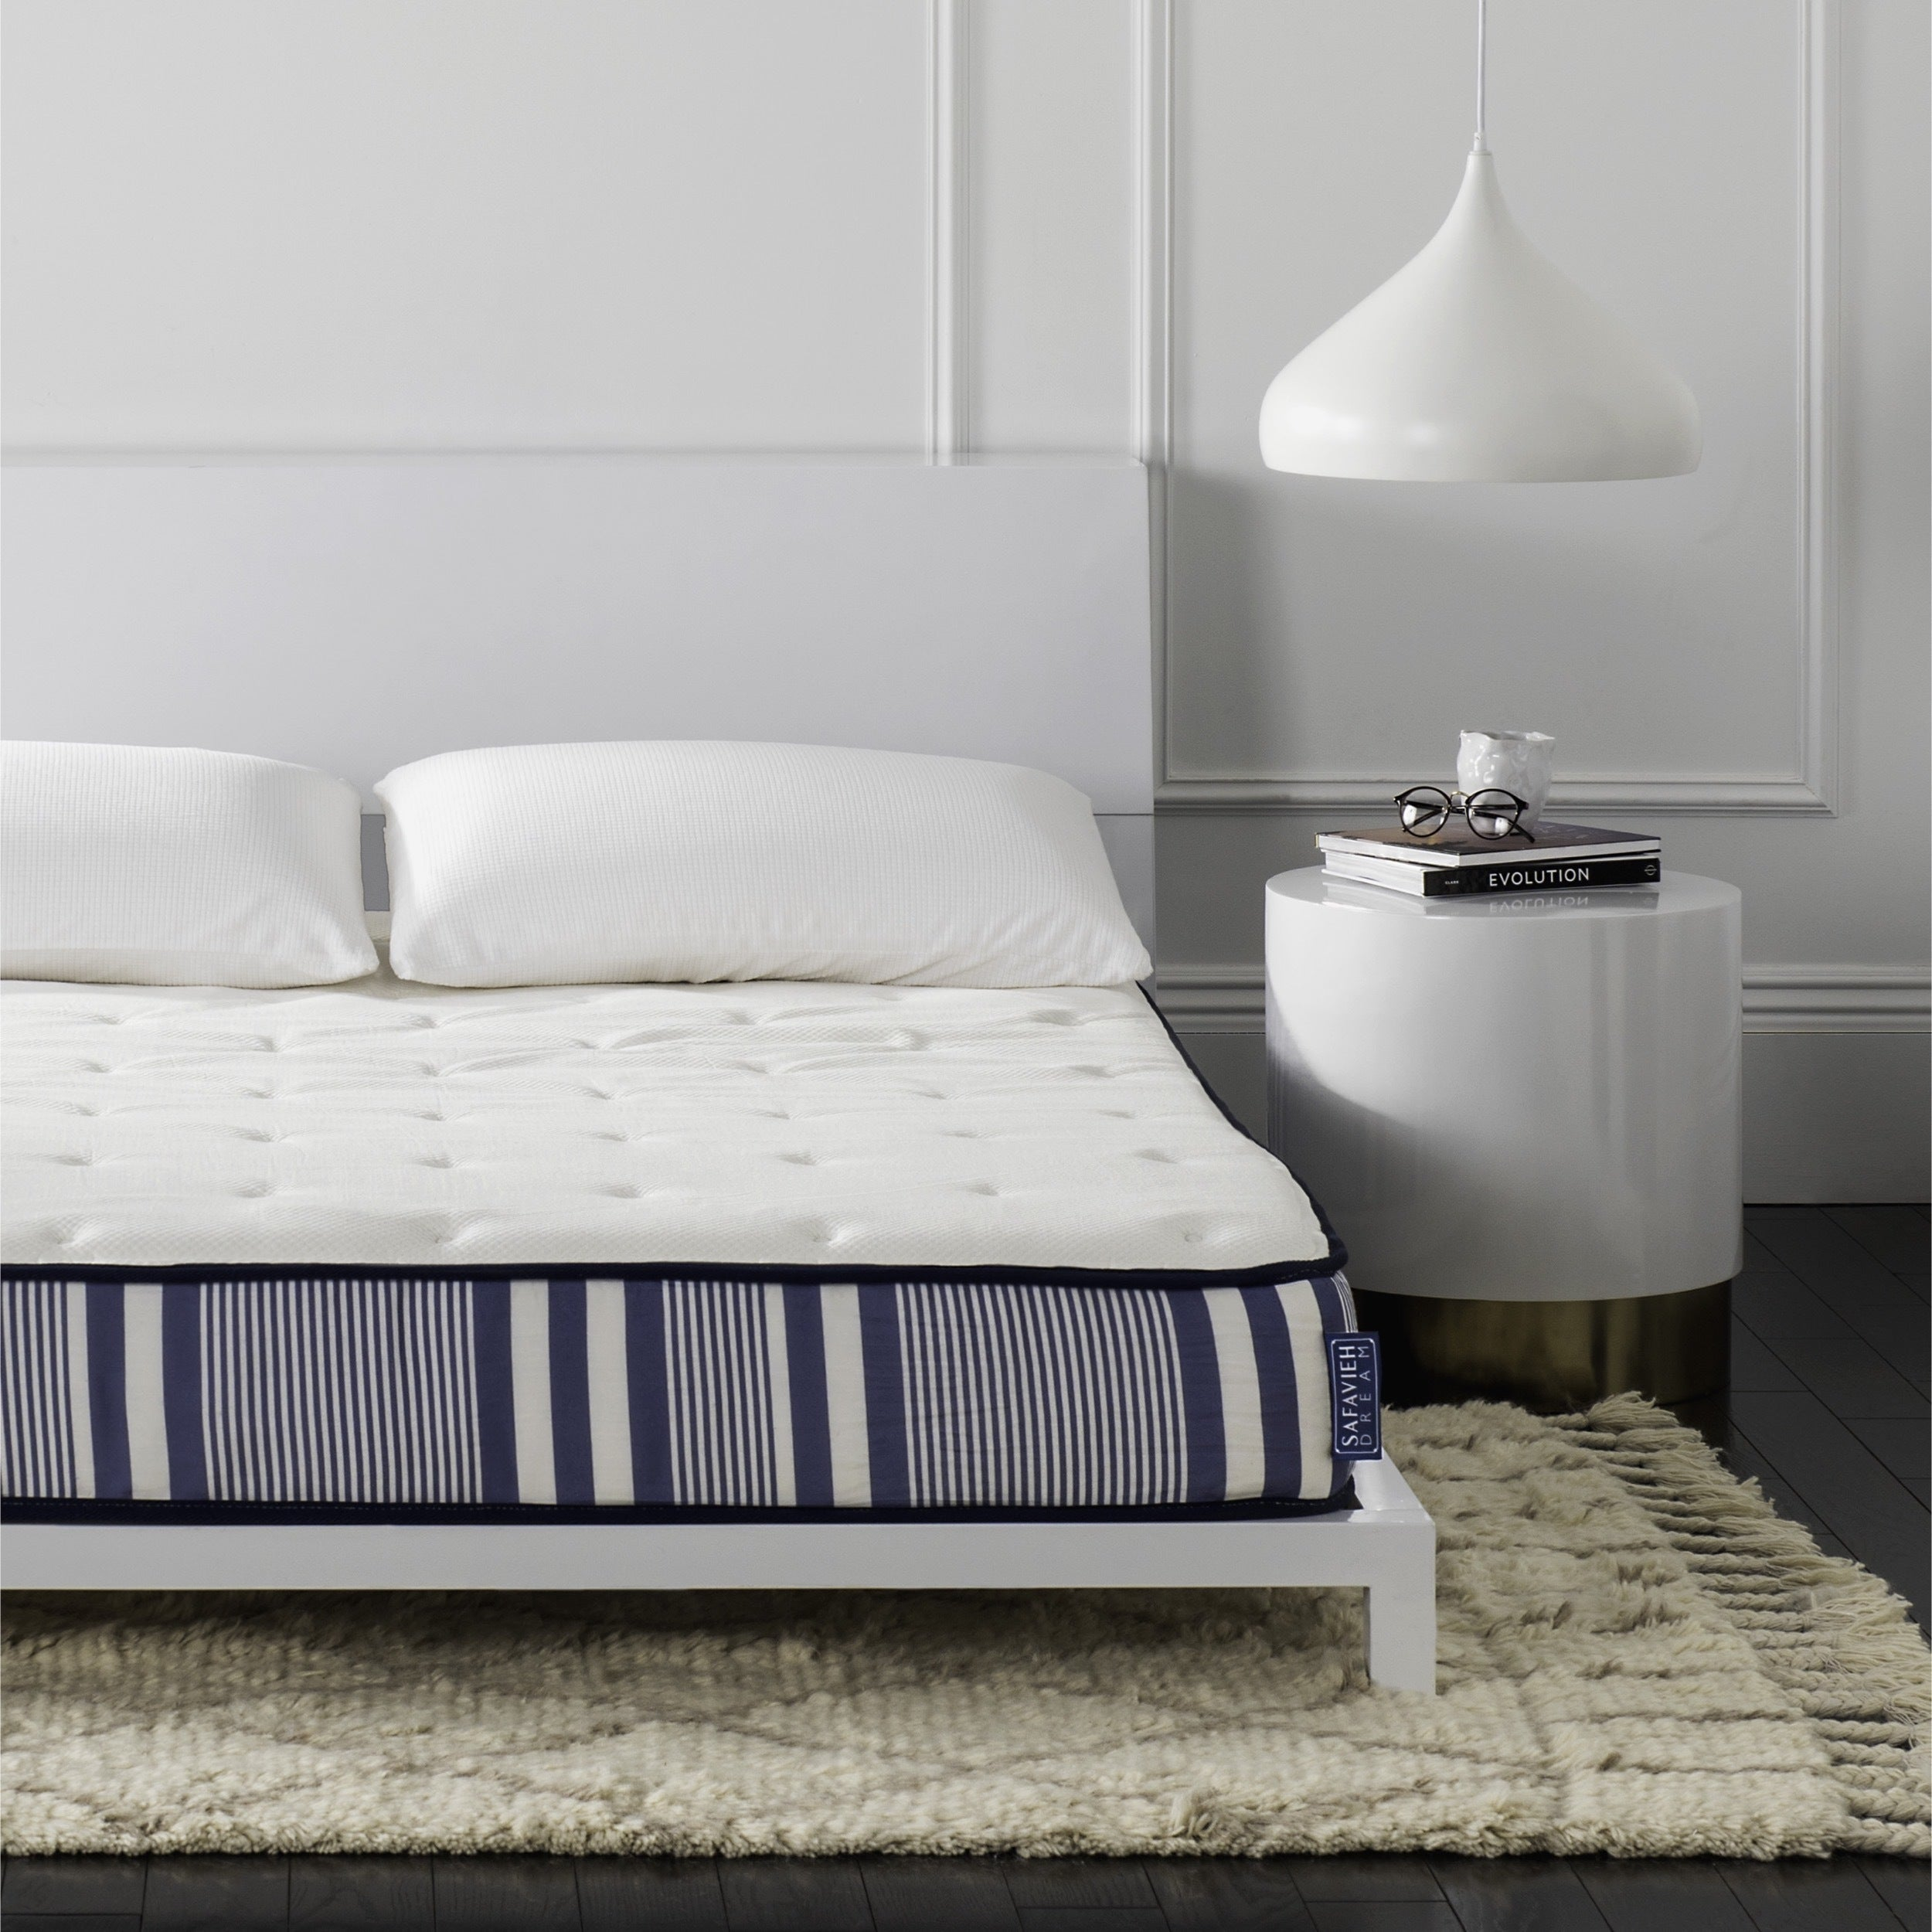 Safavieh Bliss 8-inch Spring Queen-size Mattress Bed-in-a...